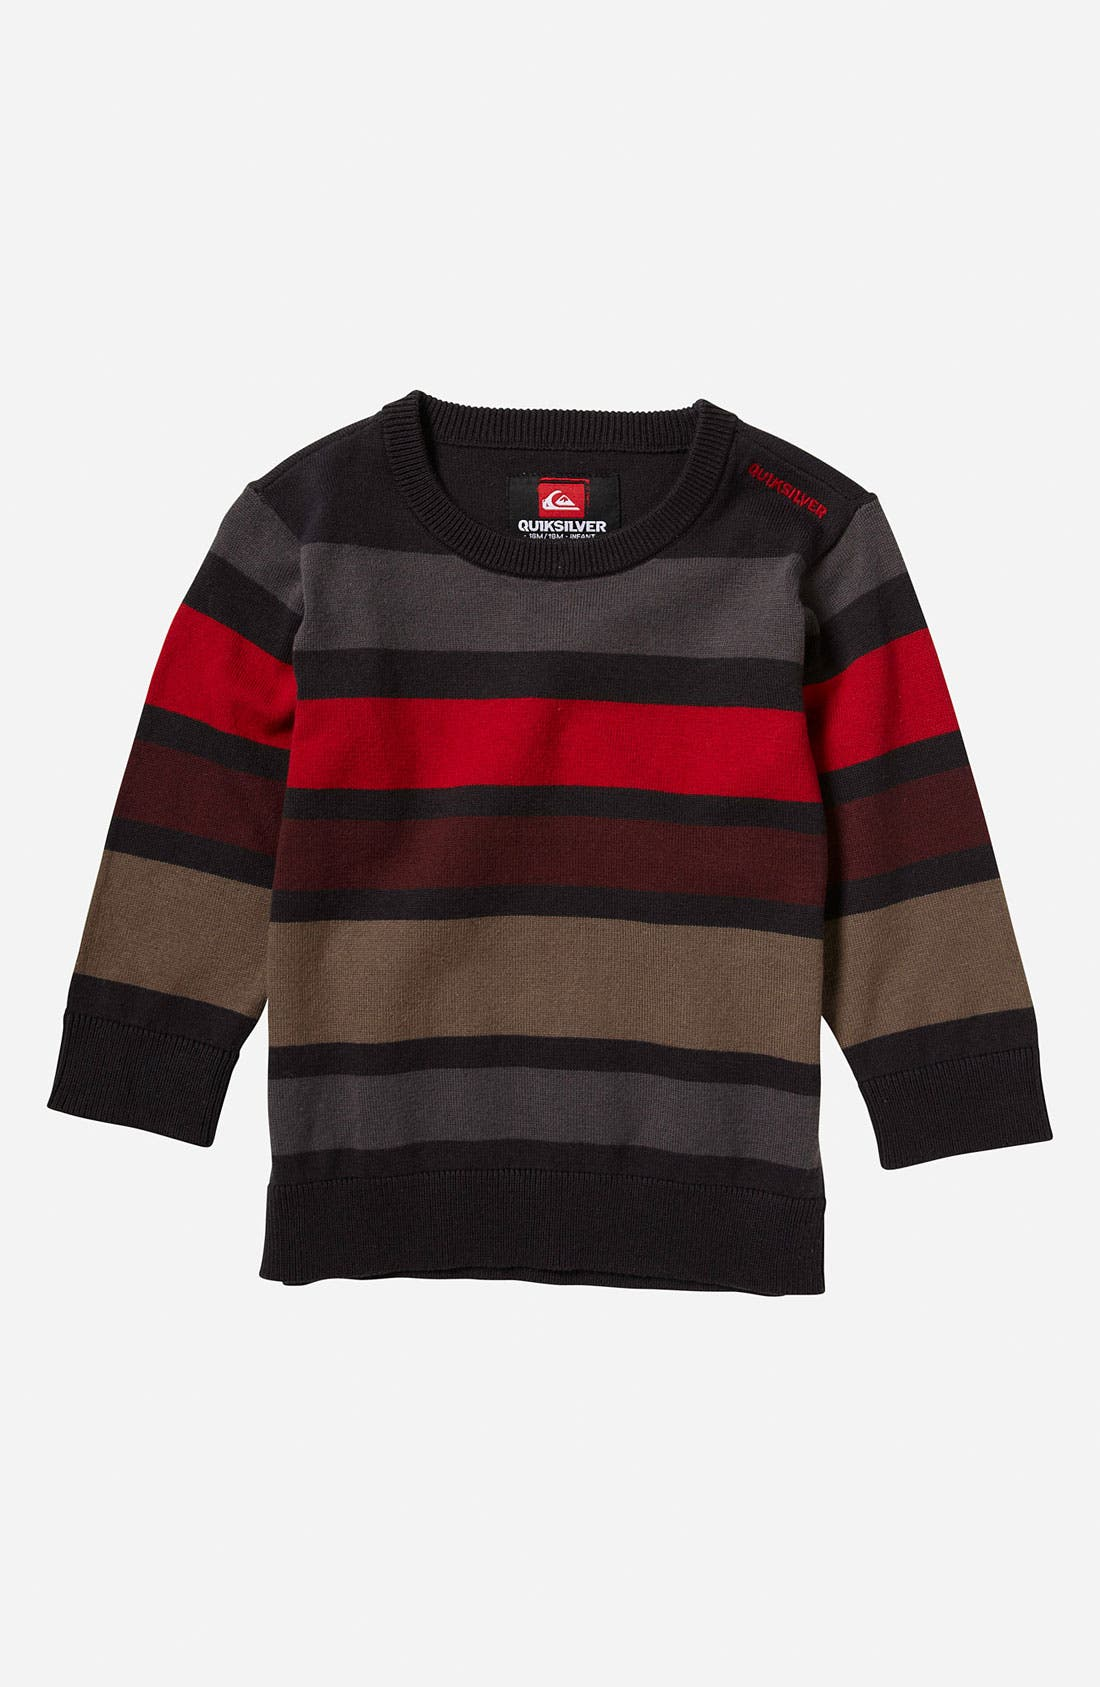 Alternate Image 1 Selected - Quiksilver 'Casting' Stripe Sweater (Toddler)